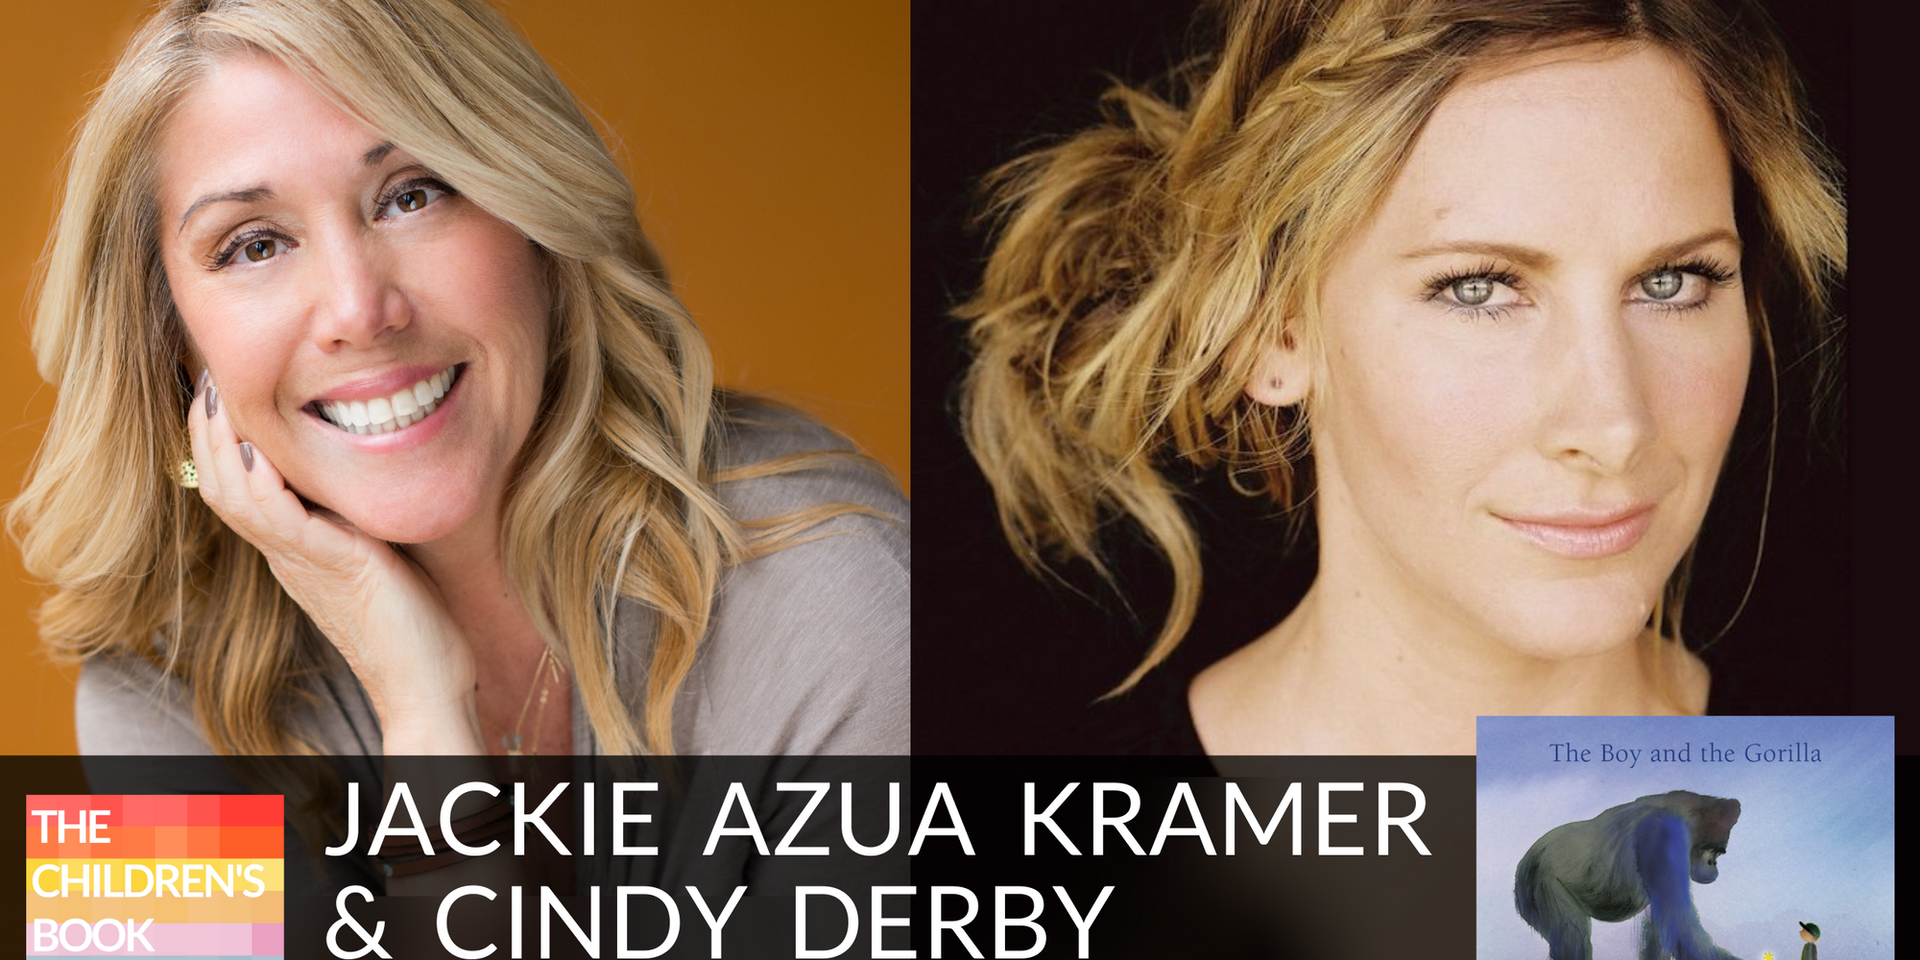 Jackie Azúa Kramer and Cindy Derby